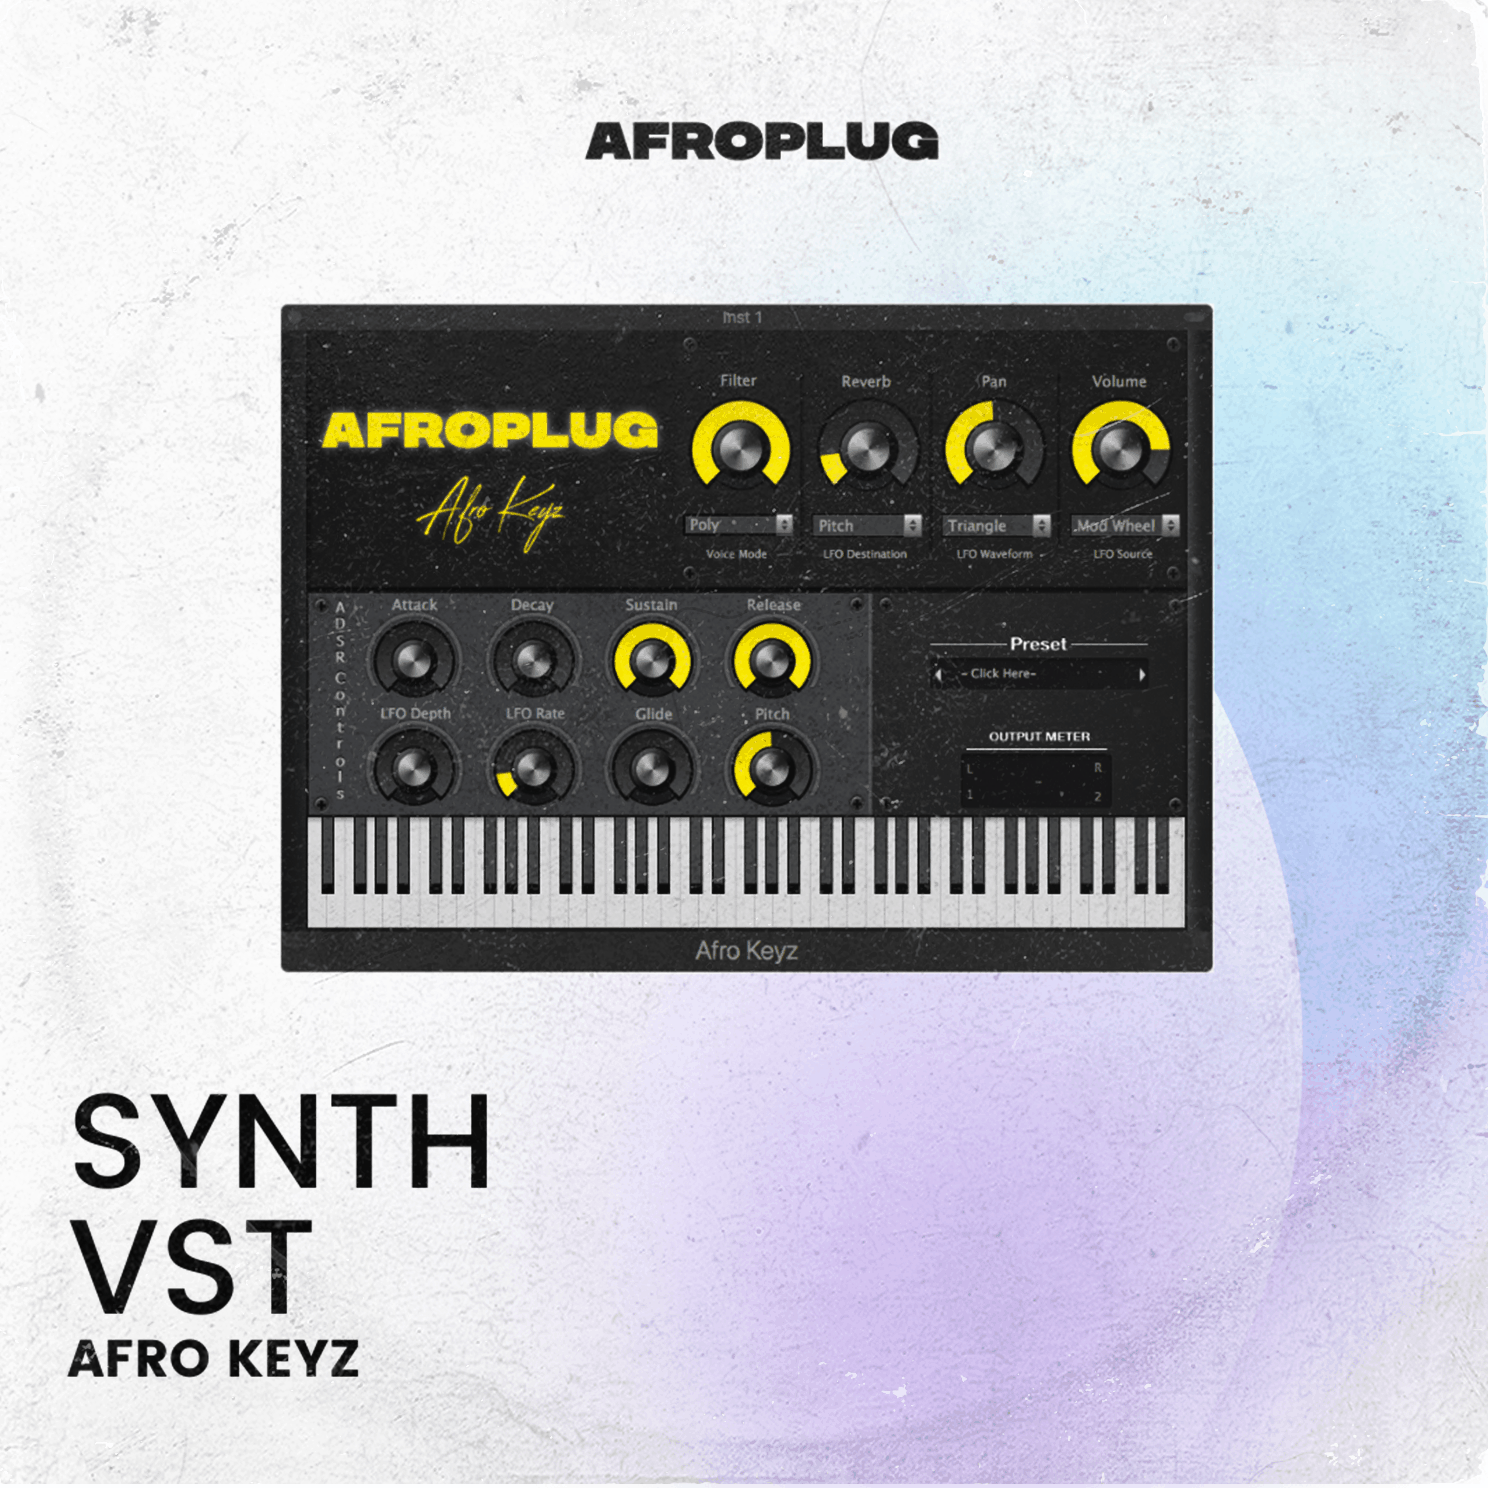 Afro Keyz - Synth Drum VST Plugin for African Beats